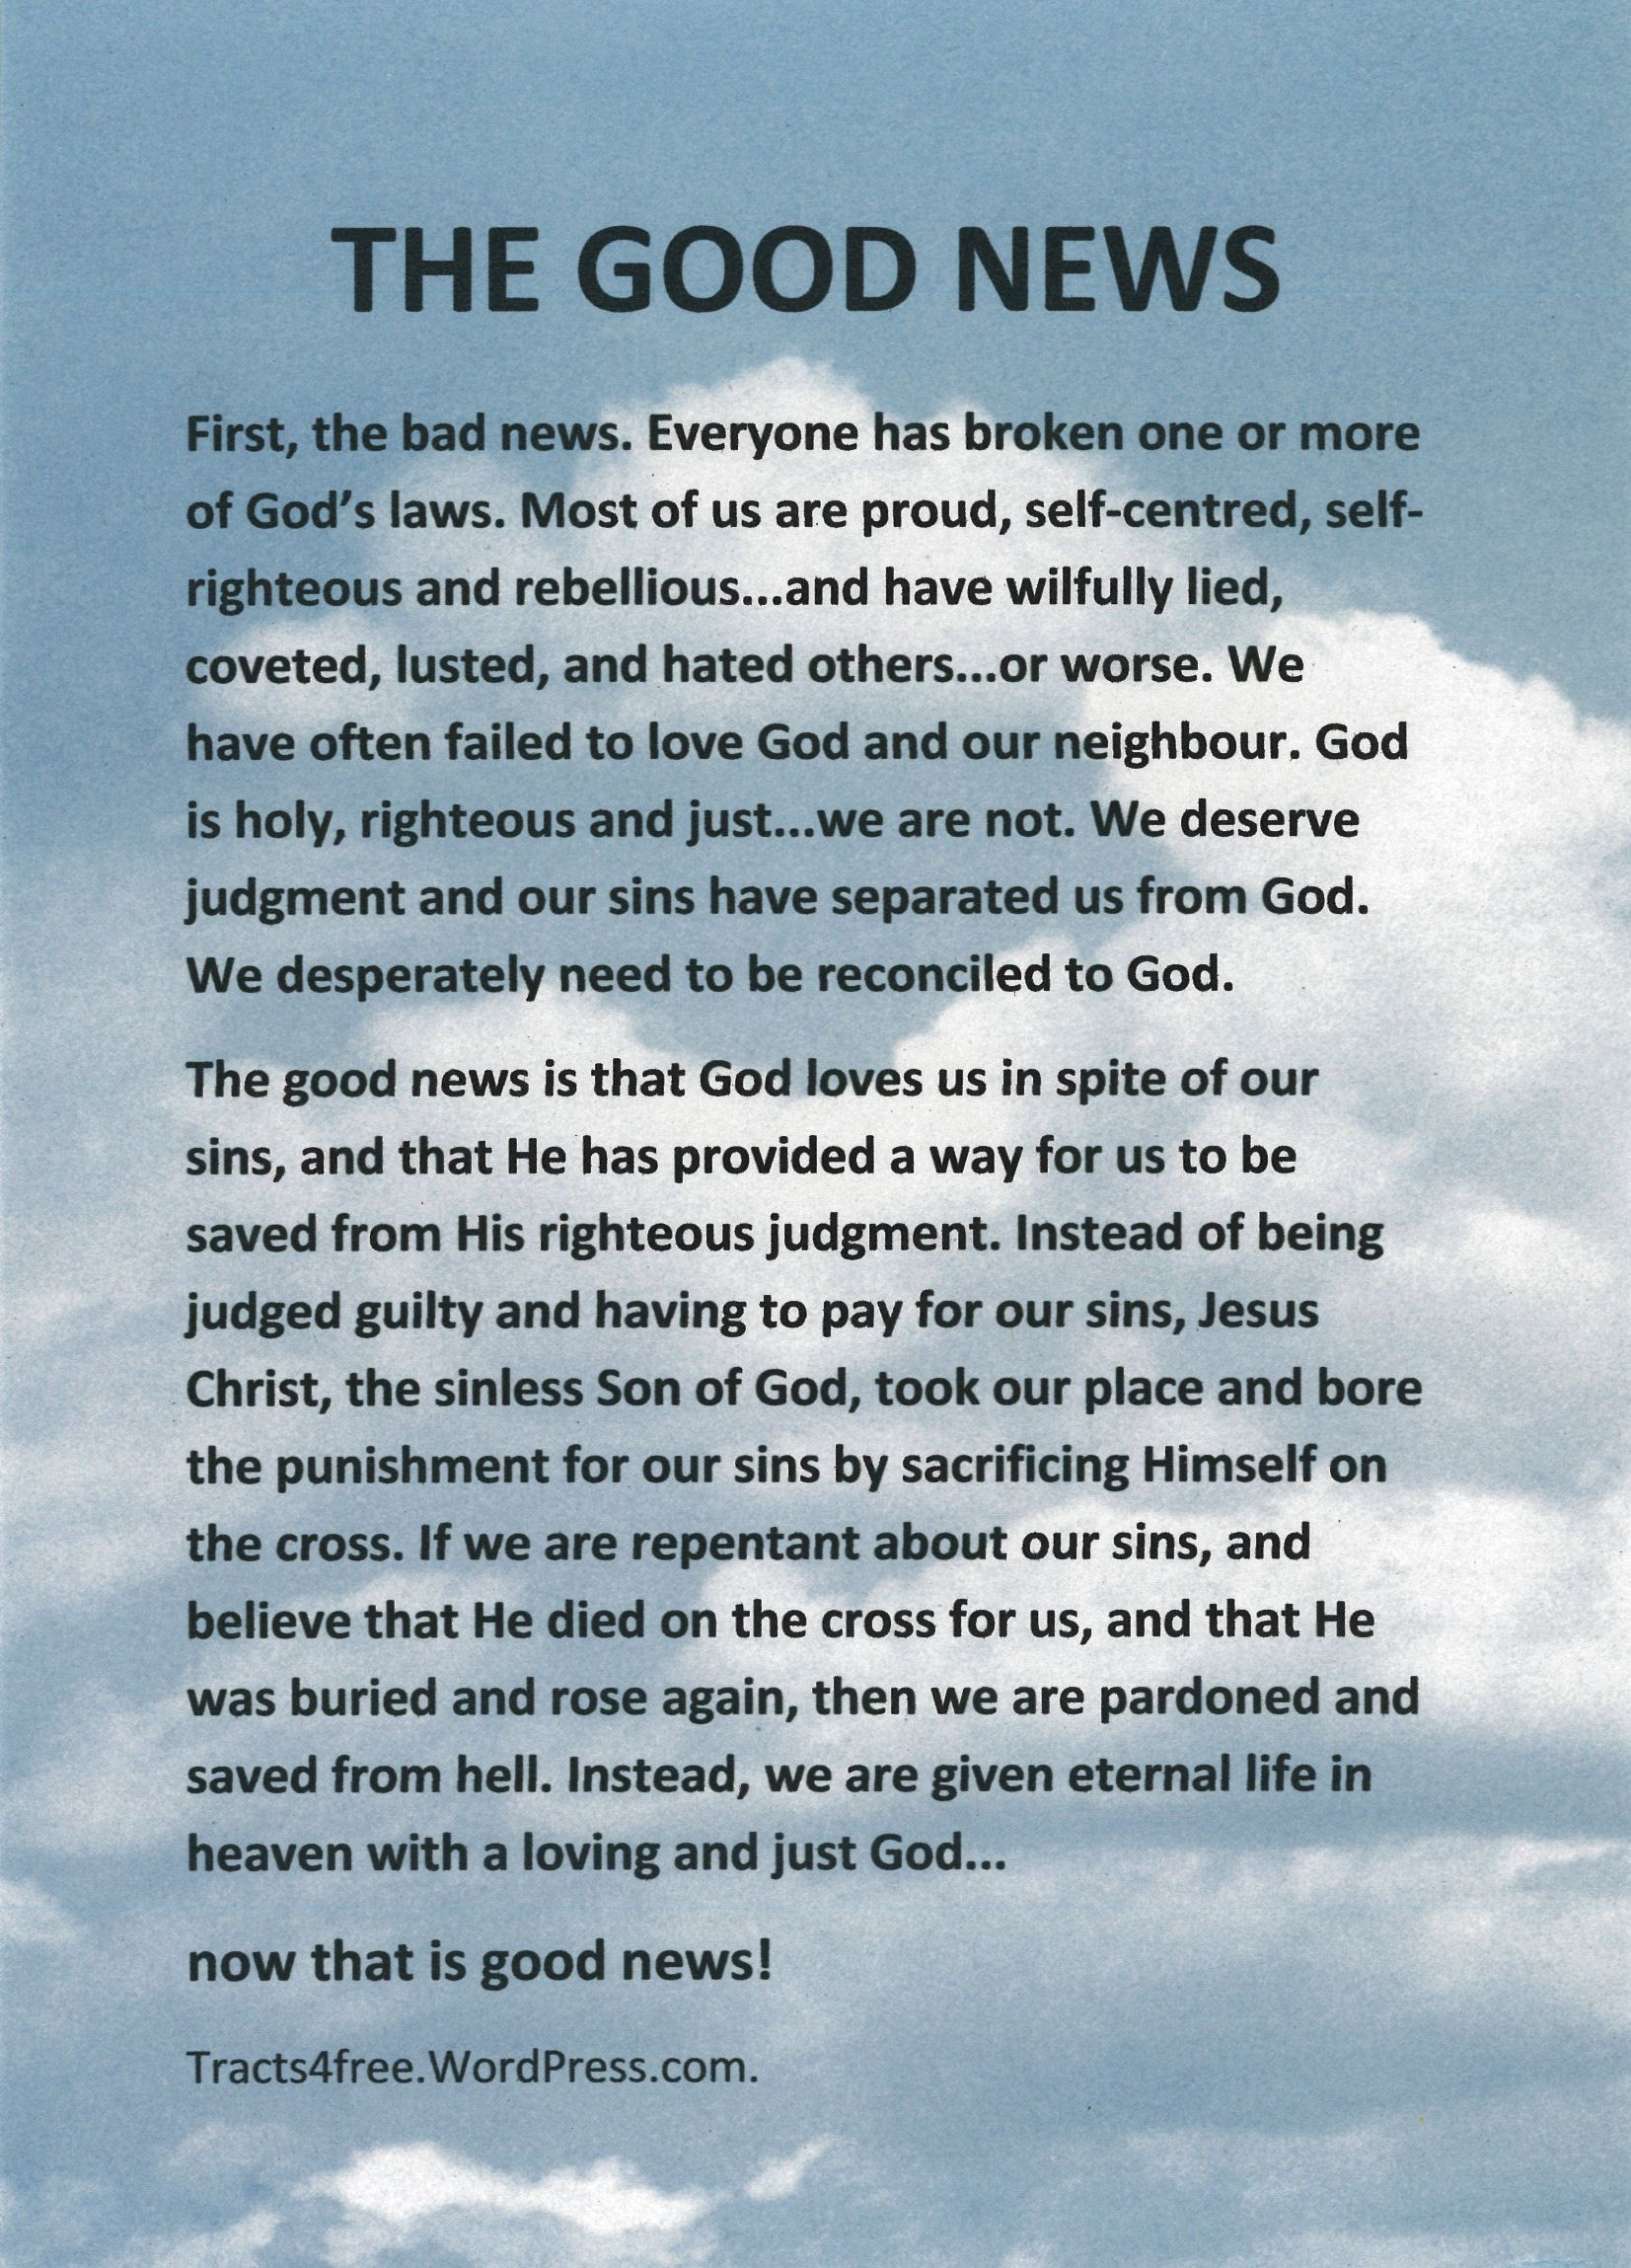 Salvation Tracts Printable - Google Search | The Good News - Free Printable Tracts For Evangelism